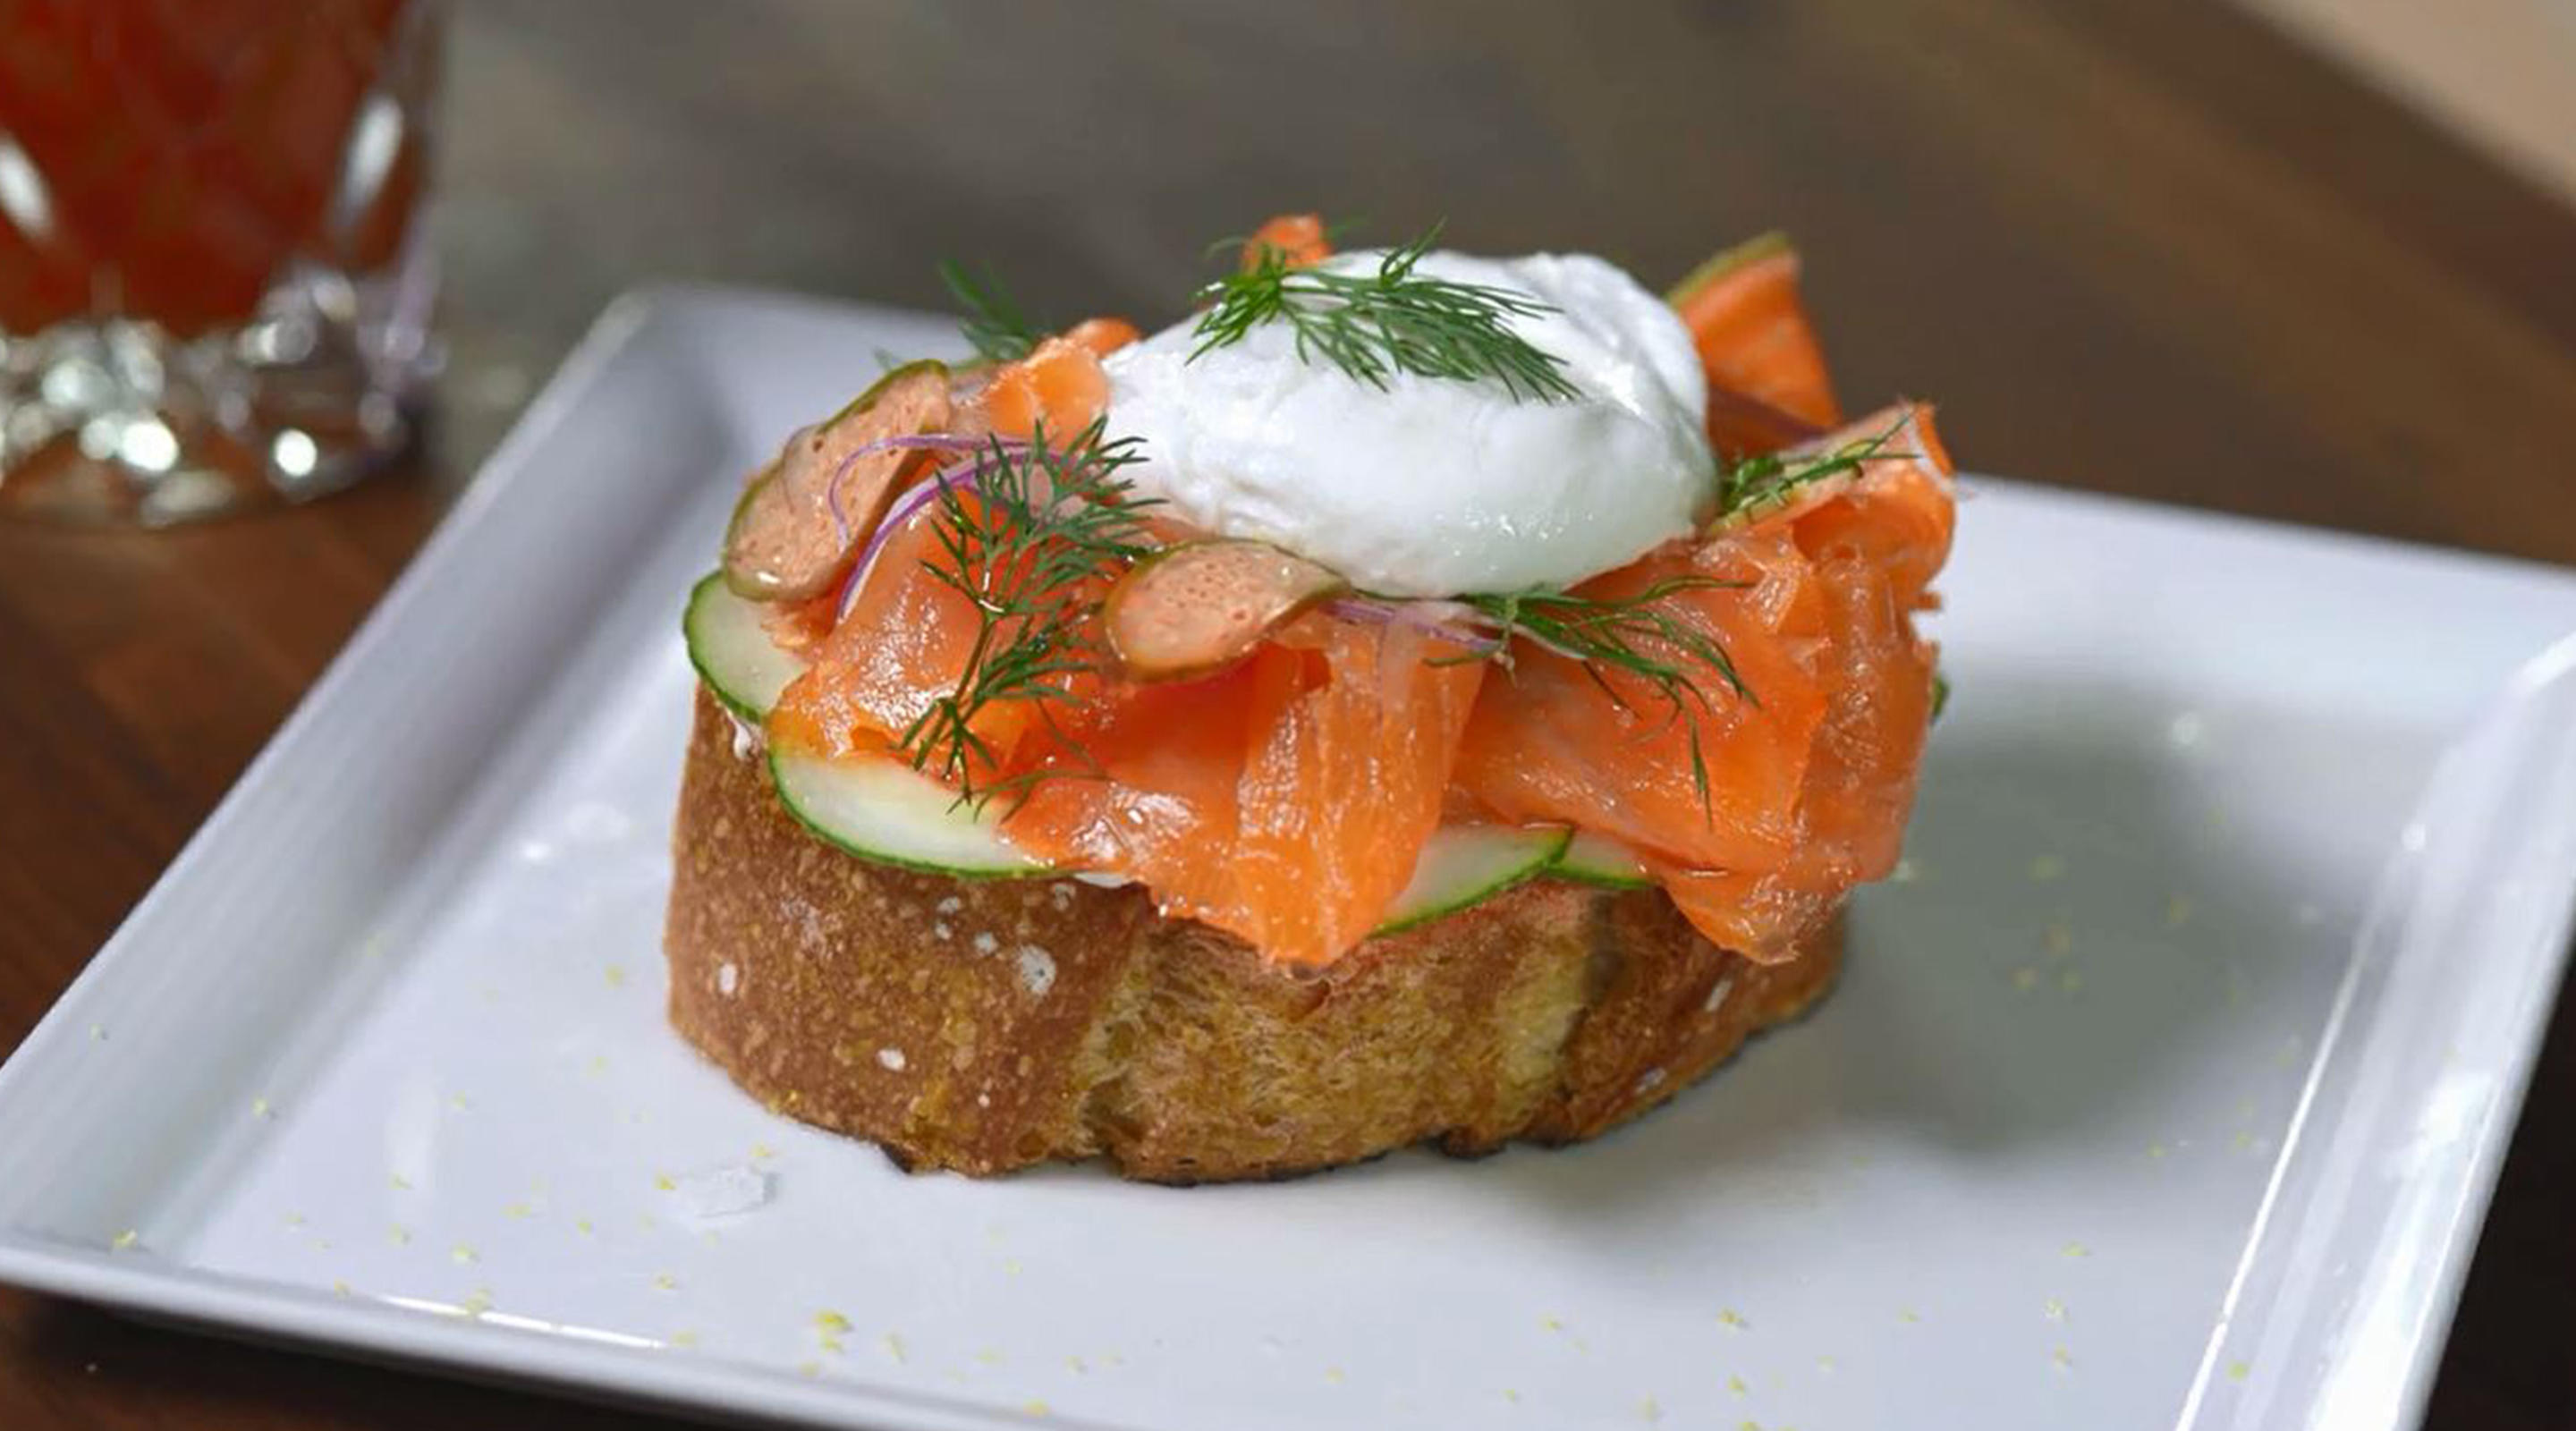 Executive Chef Nathan Frost of Market Café creates a Smoked Salmon Toastie.